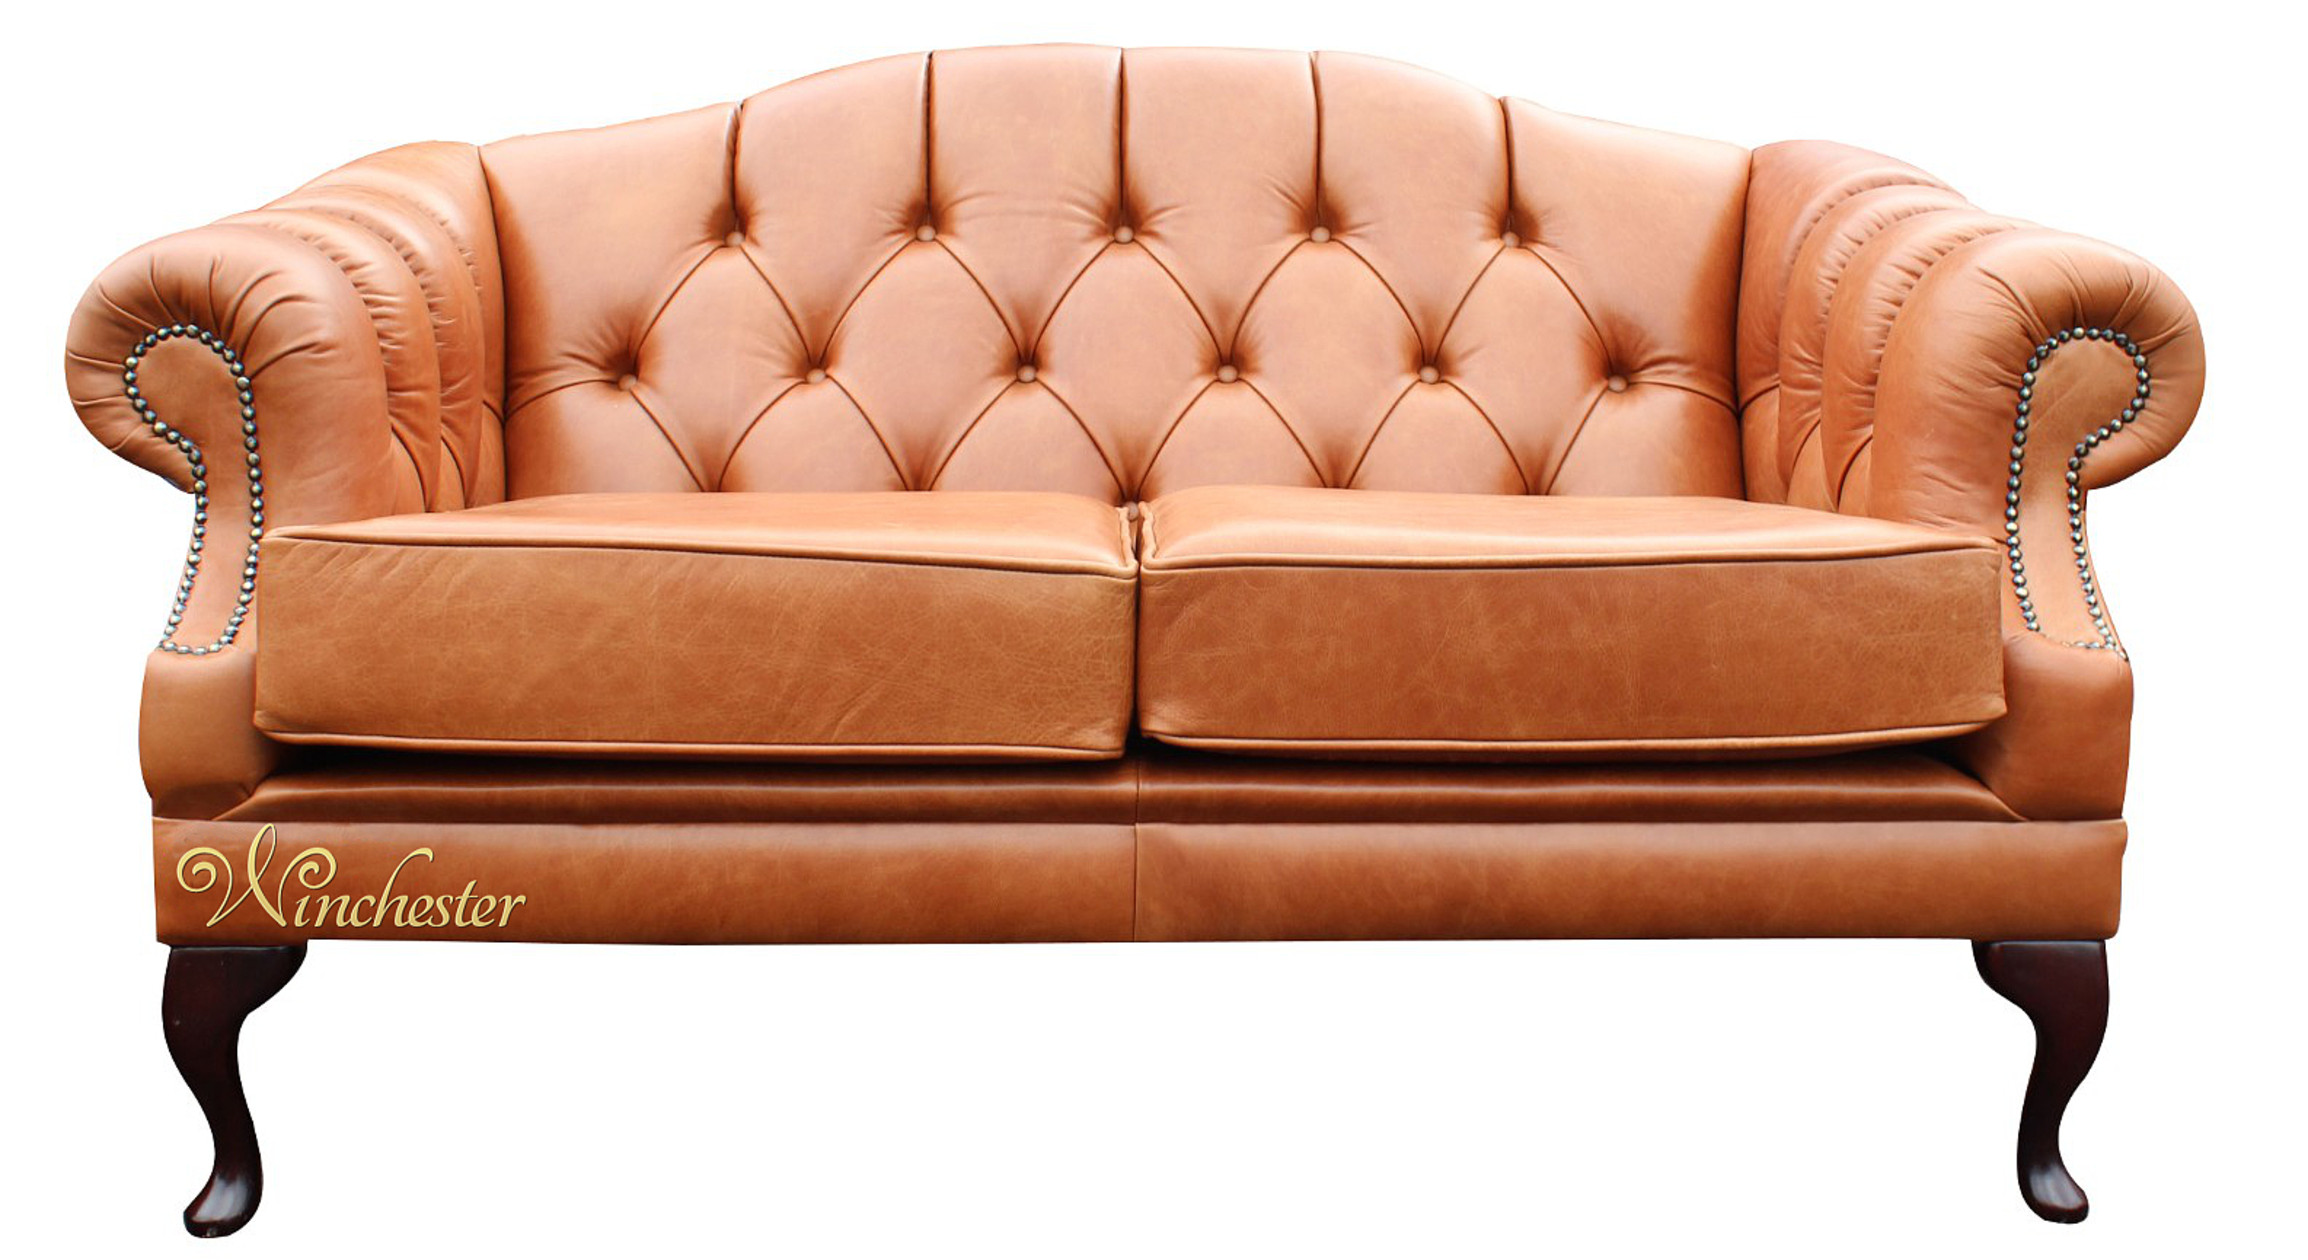 Chesterfield Victoria 2 Seater Leather Sofa Settee Old